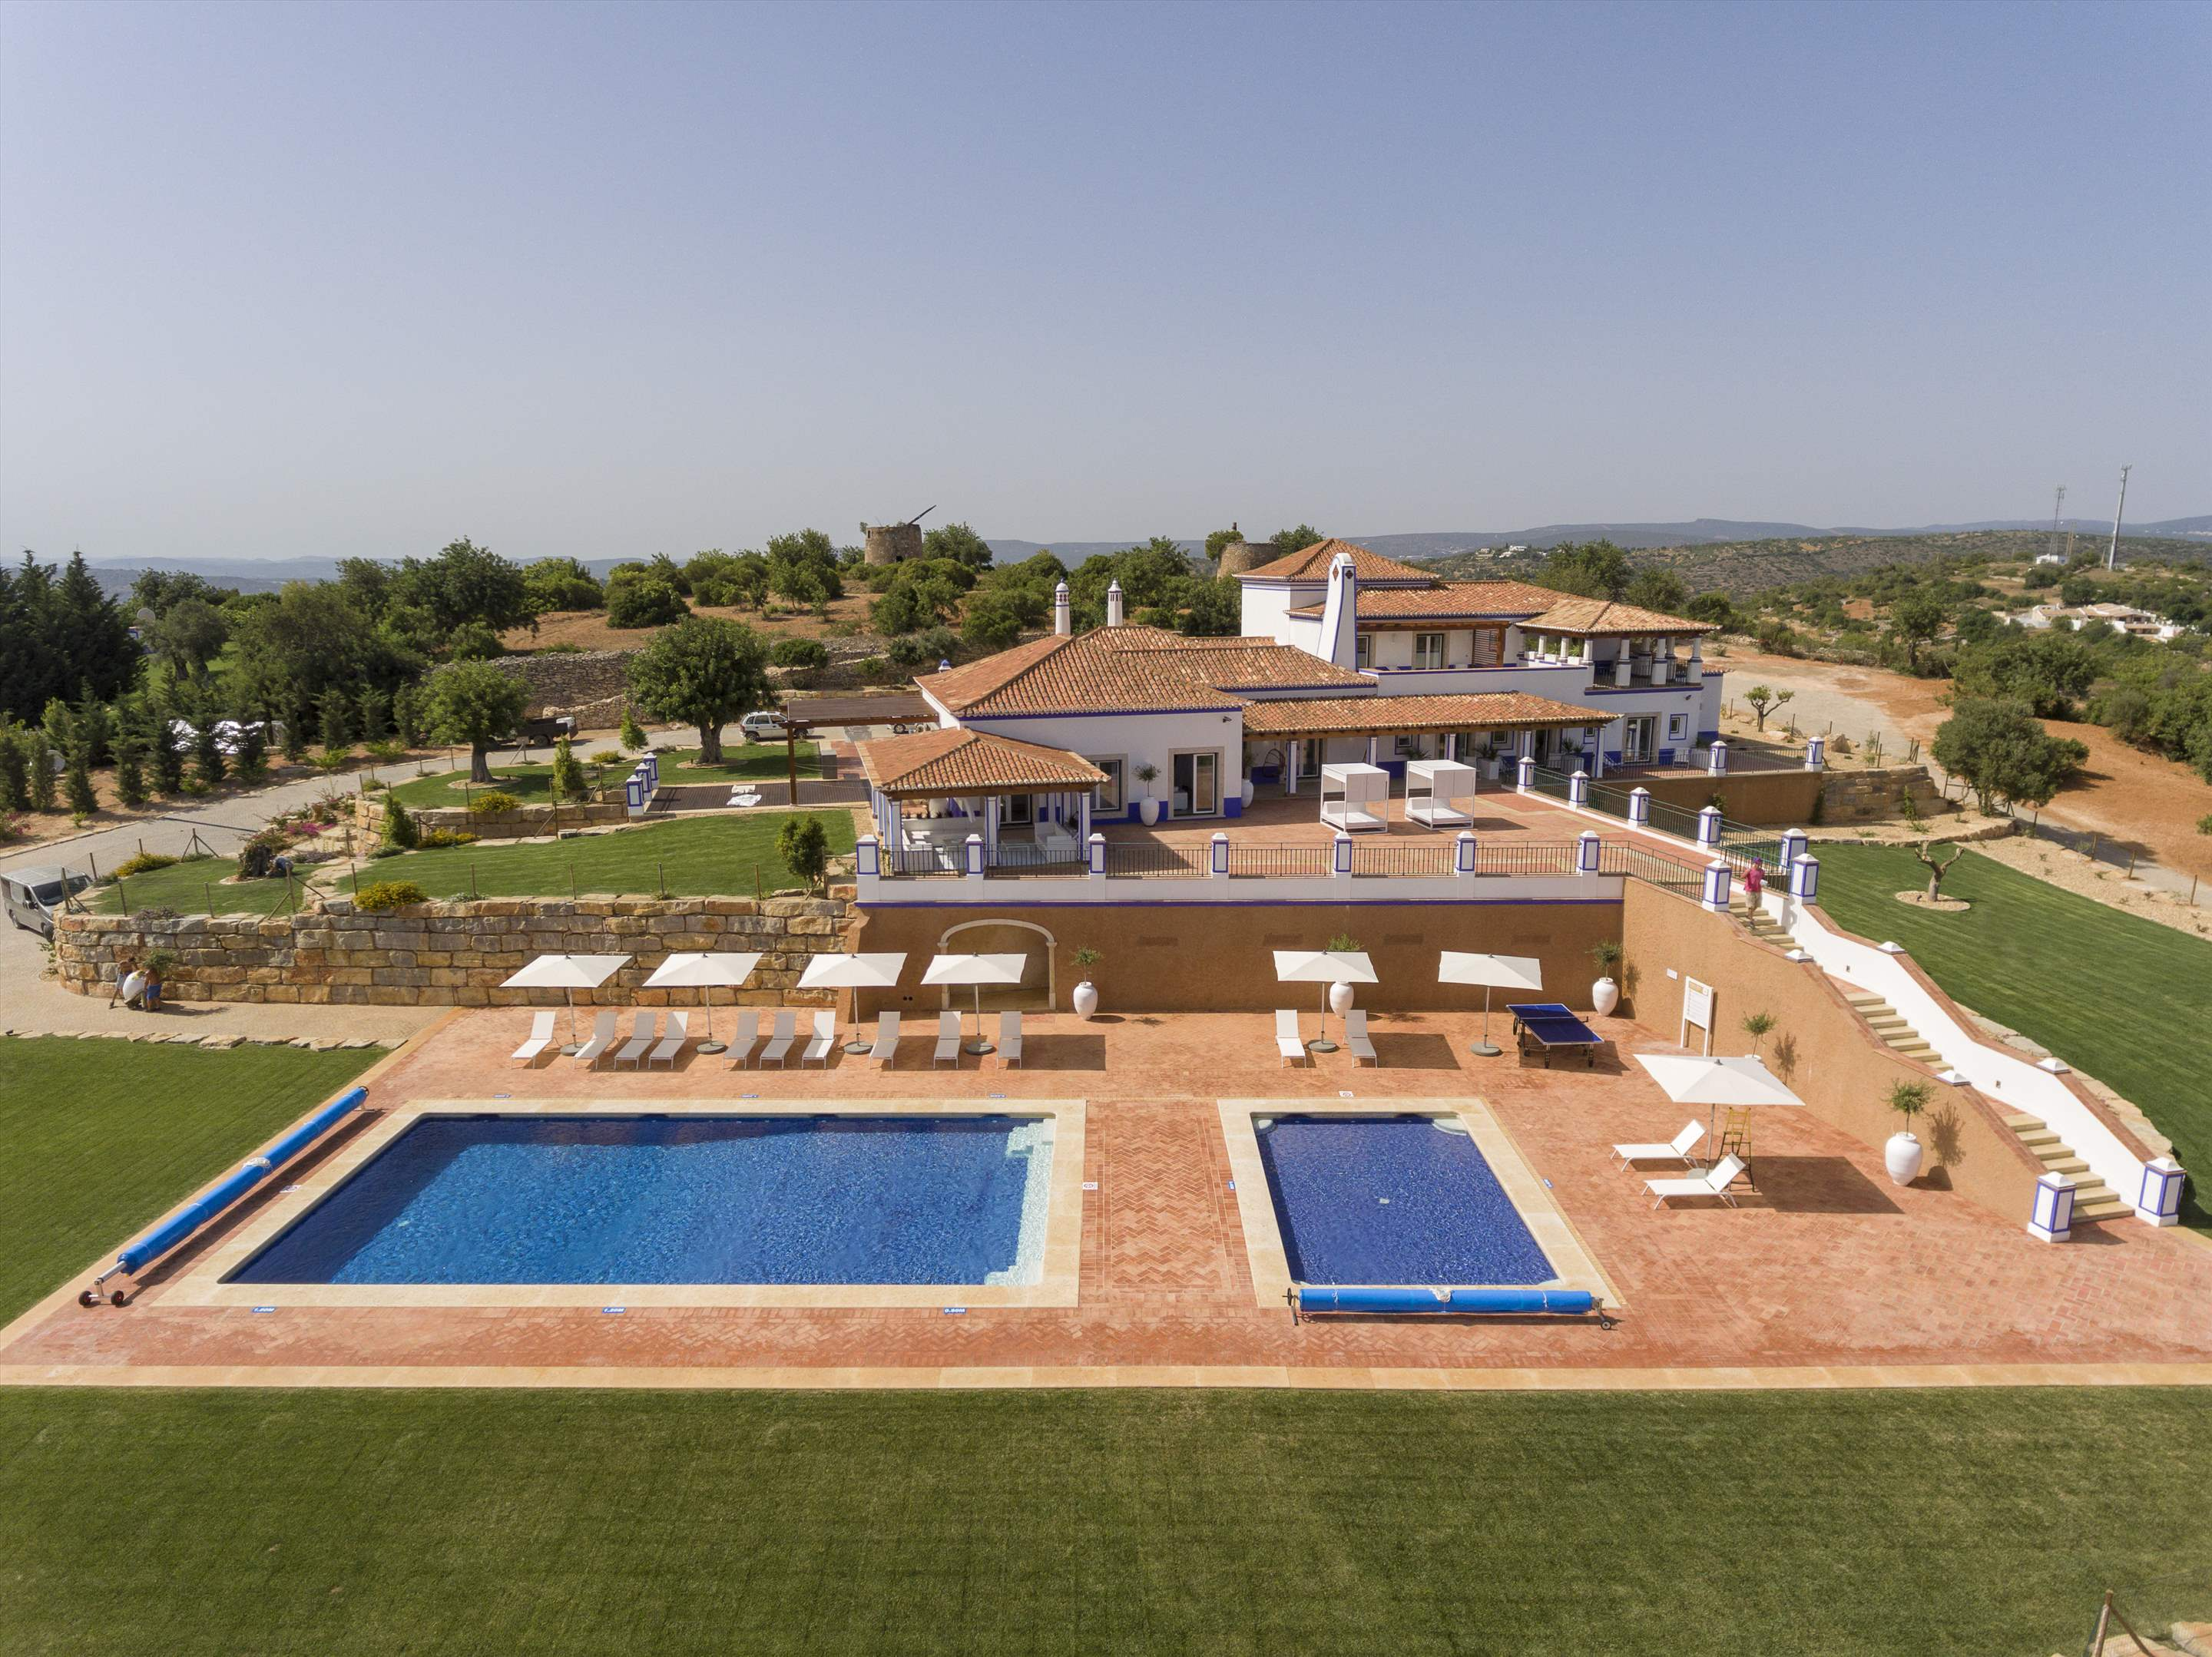 Casa da Musica , 7 bedroom villa in Vilamoura Area, Algarve Photo #1